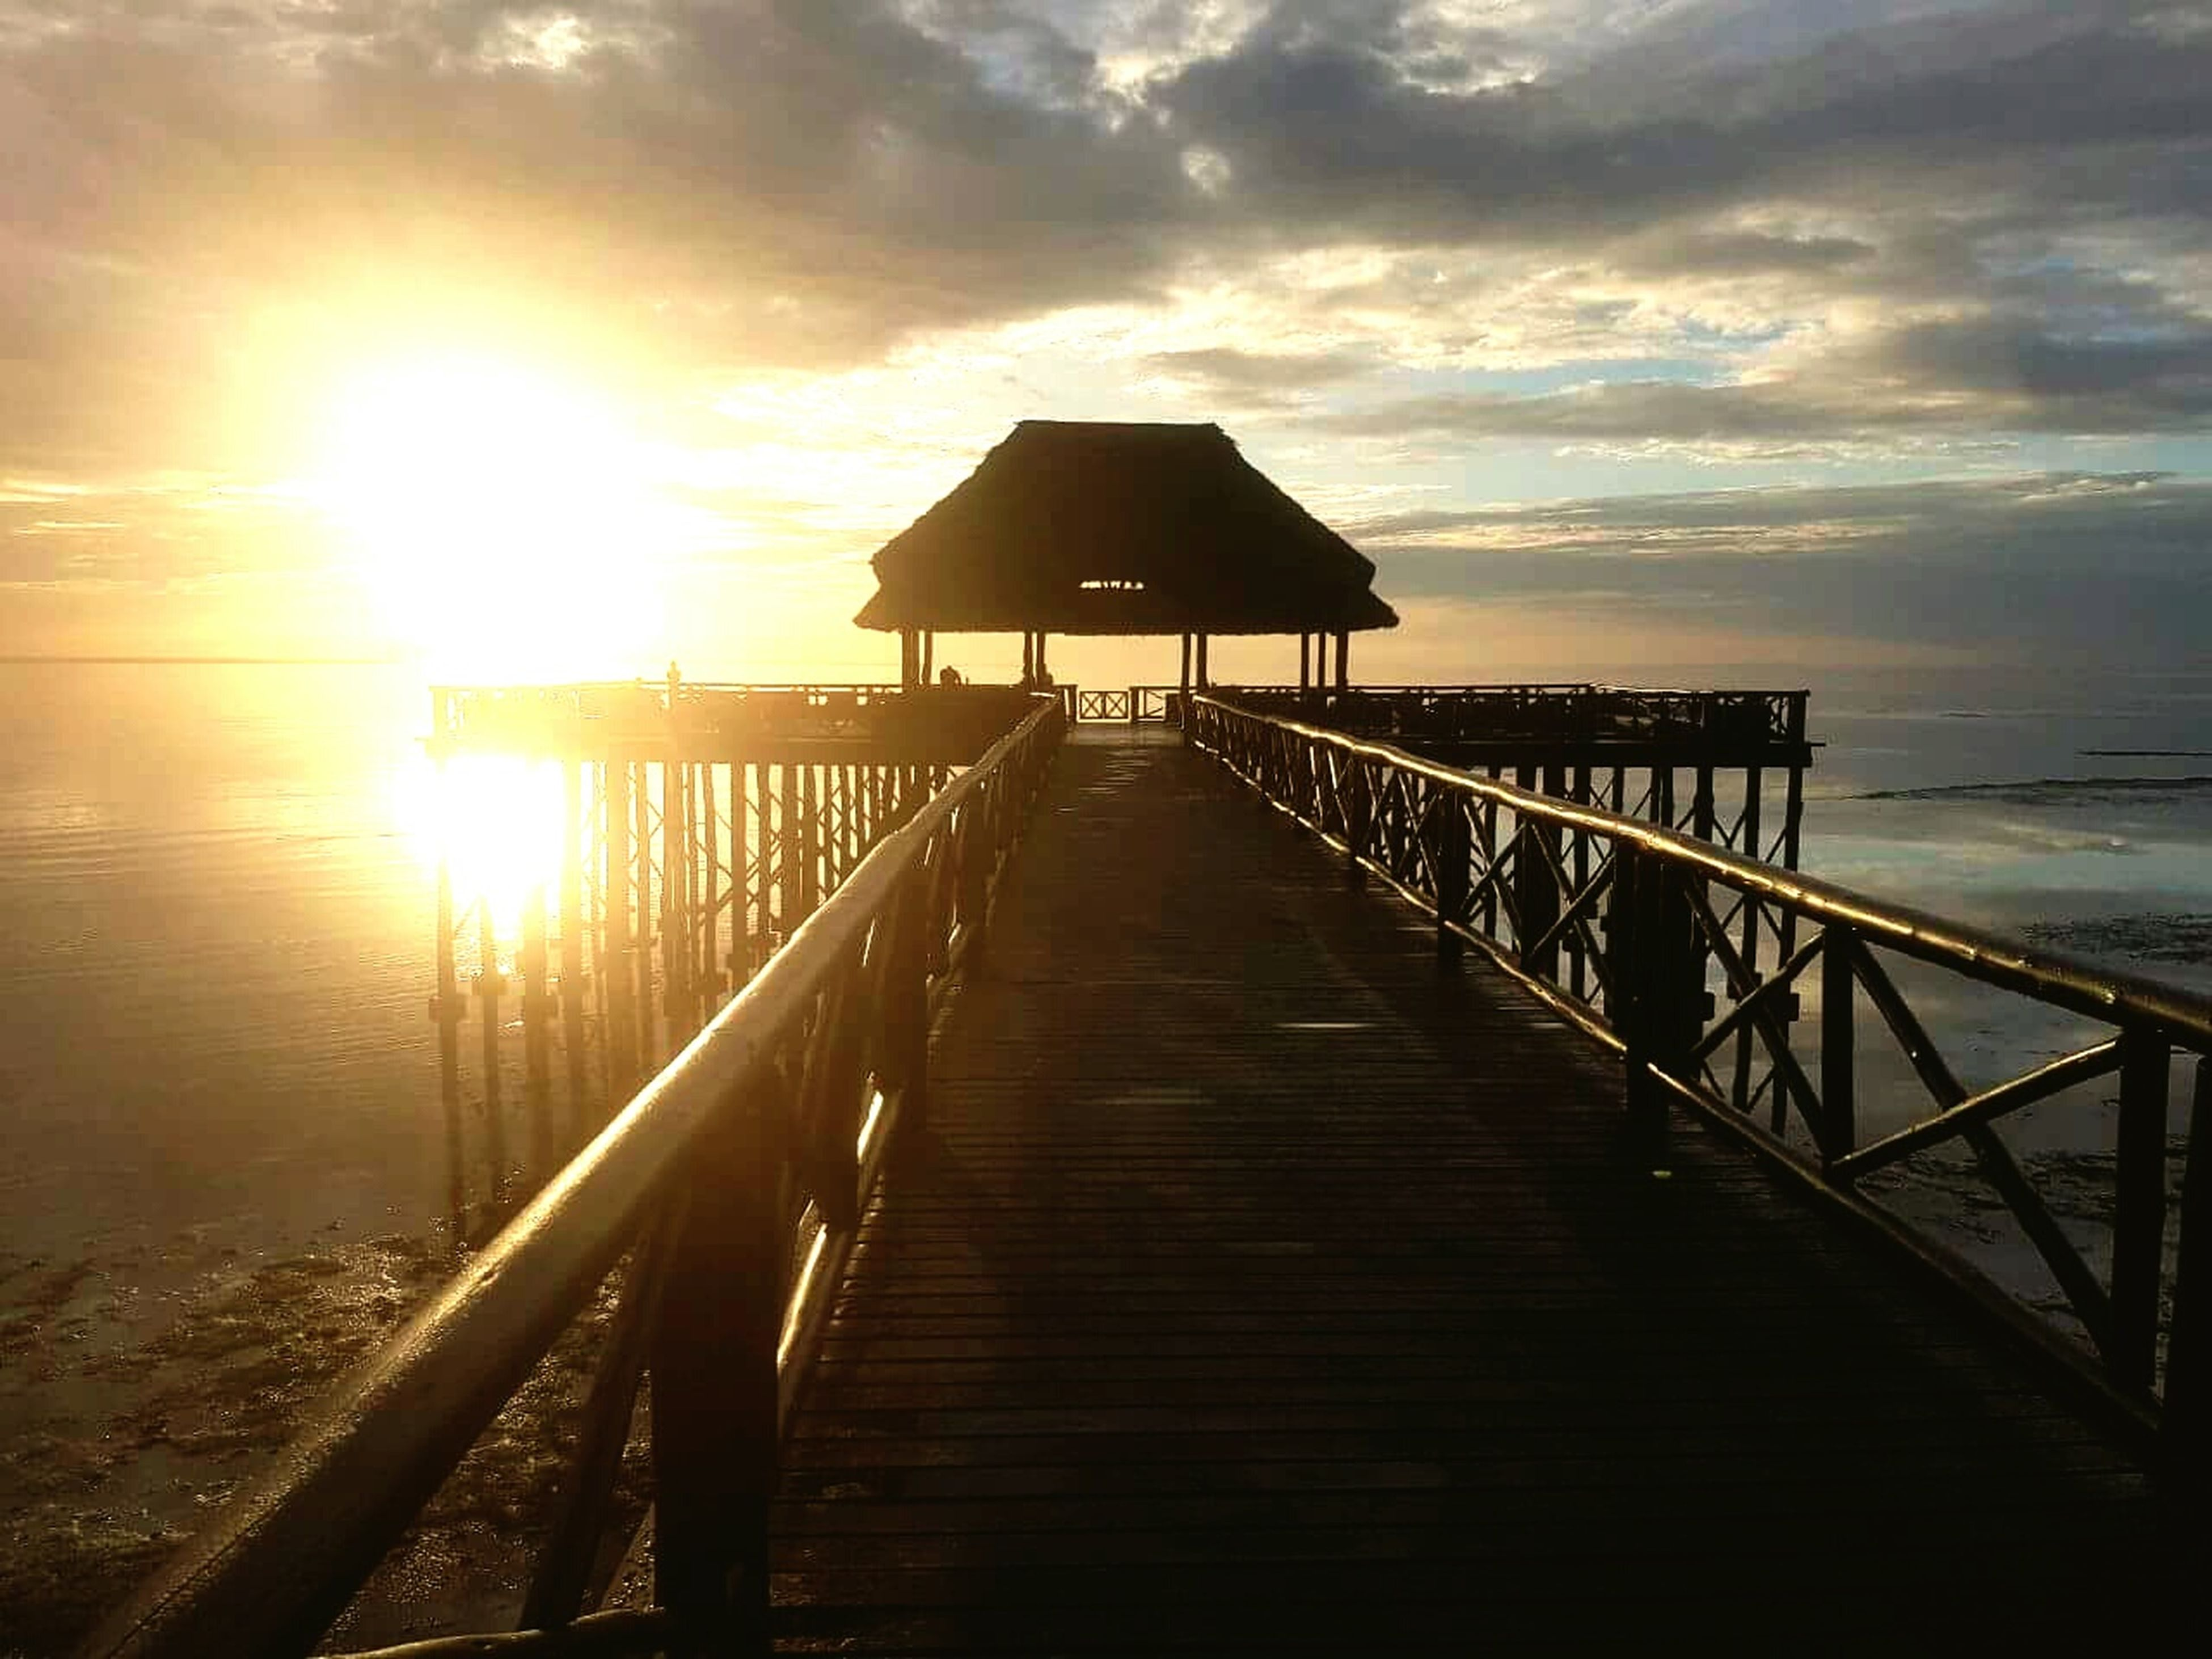 sunset, sunlight, nature, beauty in nature, sky, sea, tranquility, water, outdoors, idyllic, the way forward, railing, built structure, no people, scenics, tranquil scene, cloud - sky, architecture, horizon over water, day